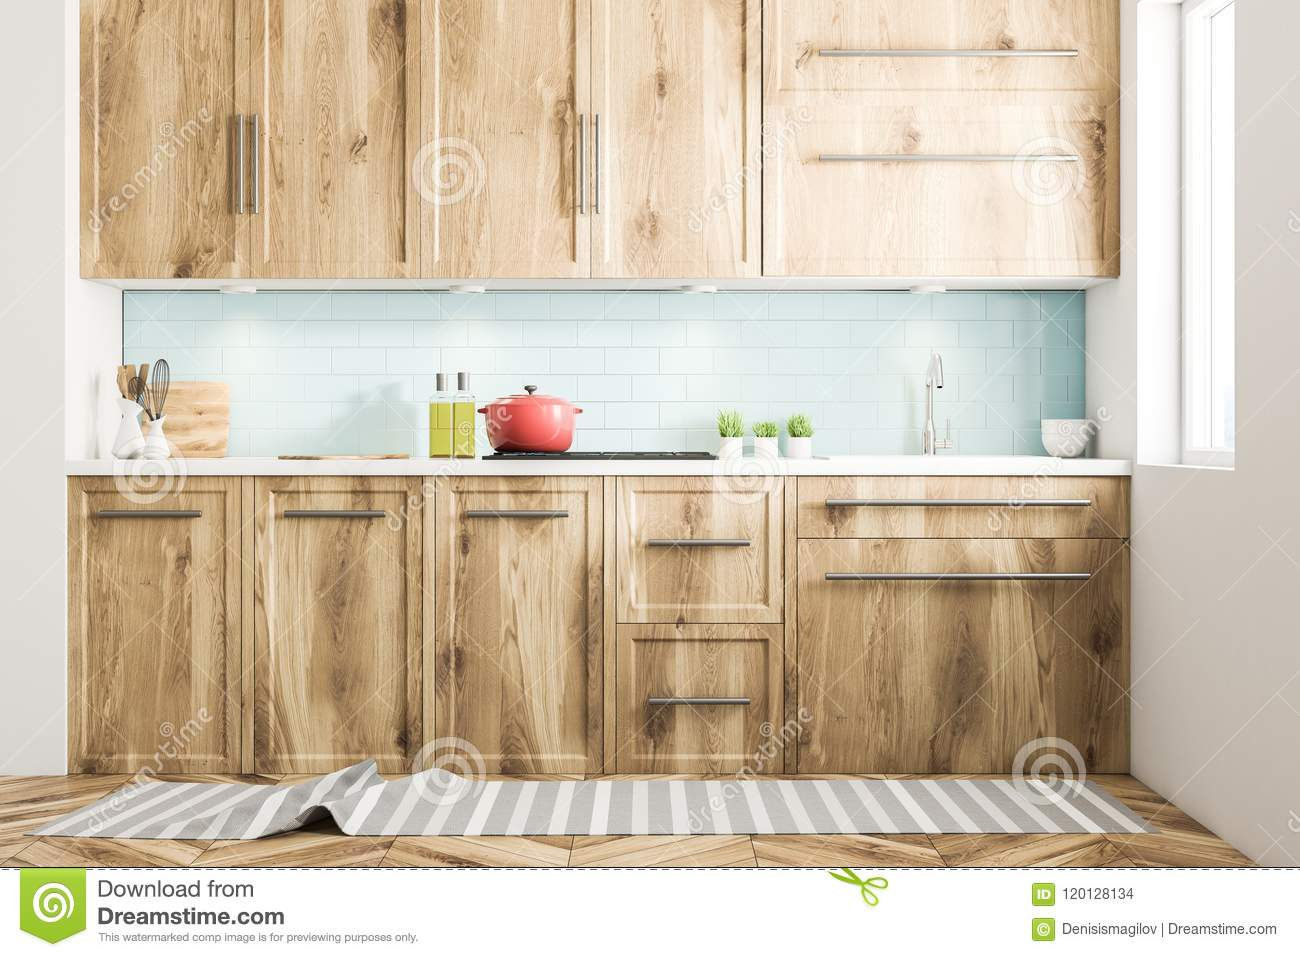 Red Cooking Pot On Wooden Kitchen Counter Front Stock Illustration Illustration Of Open Flat 120128134